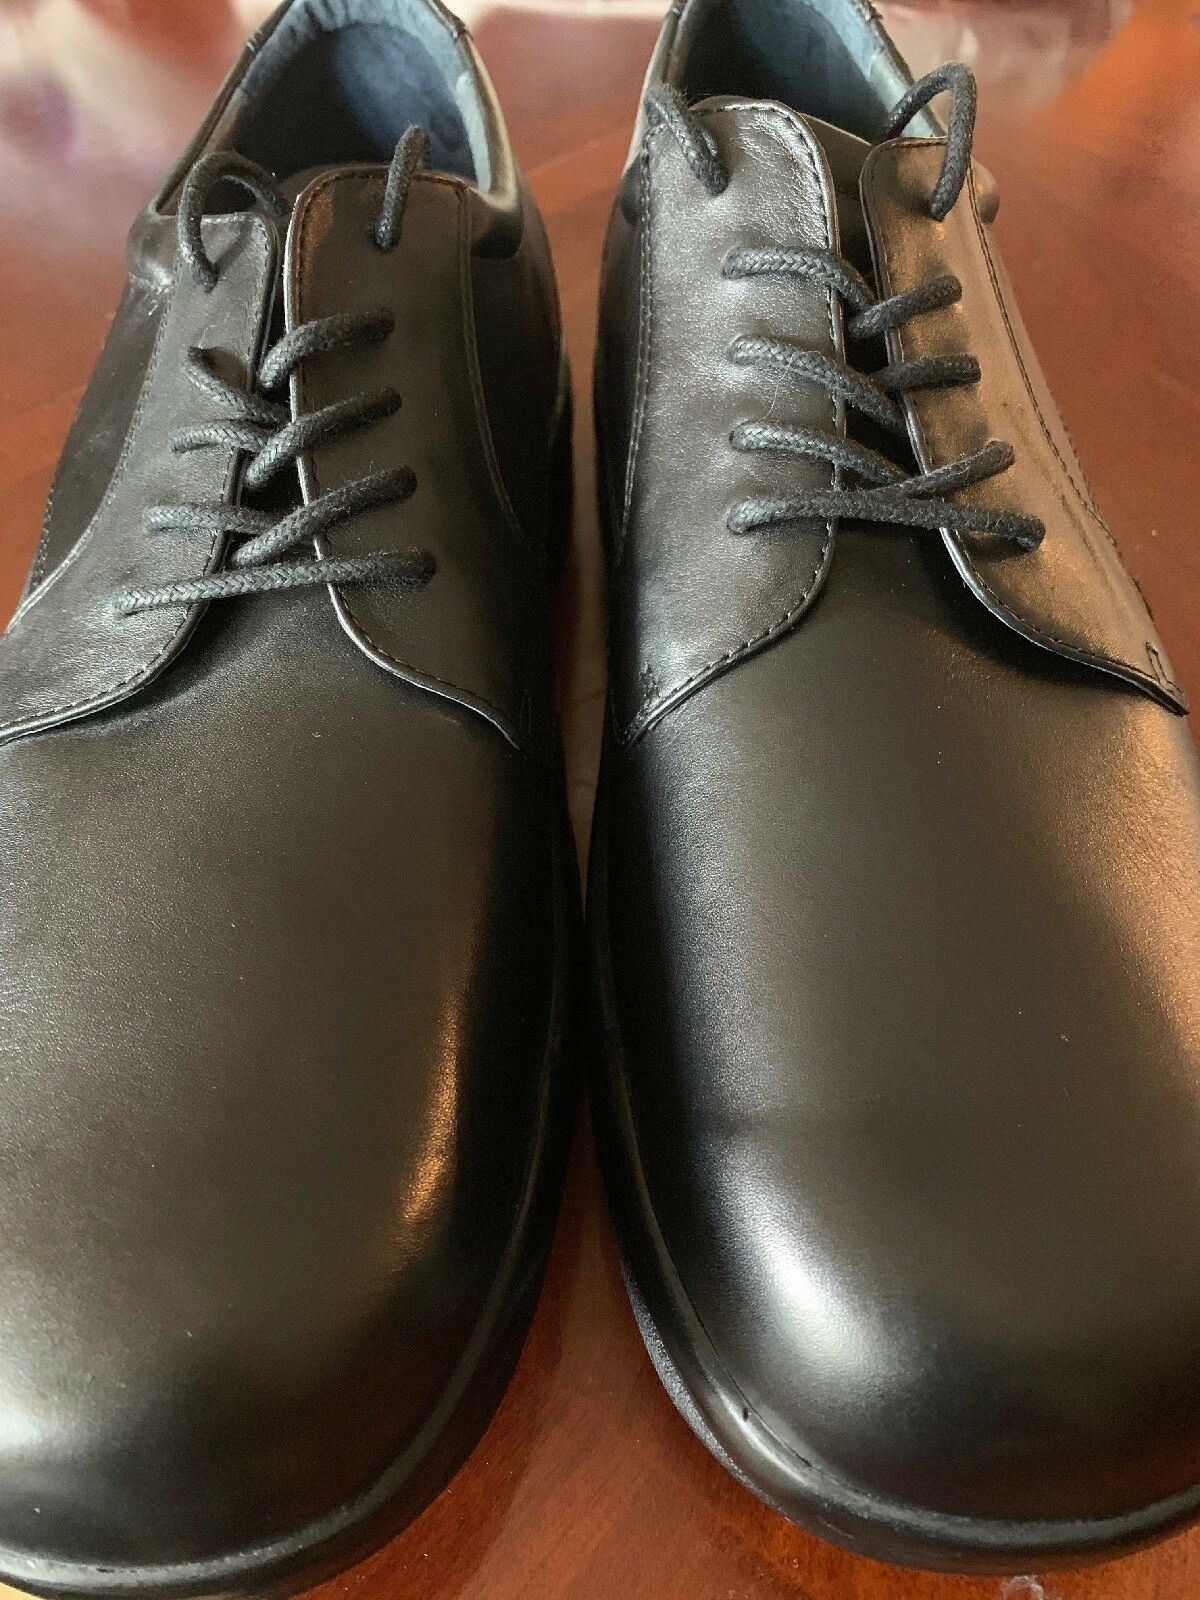 NEW Mens Apex Ambulator Classic Oxfords Size 13 Black Leather Diabetic Ortho